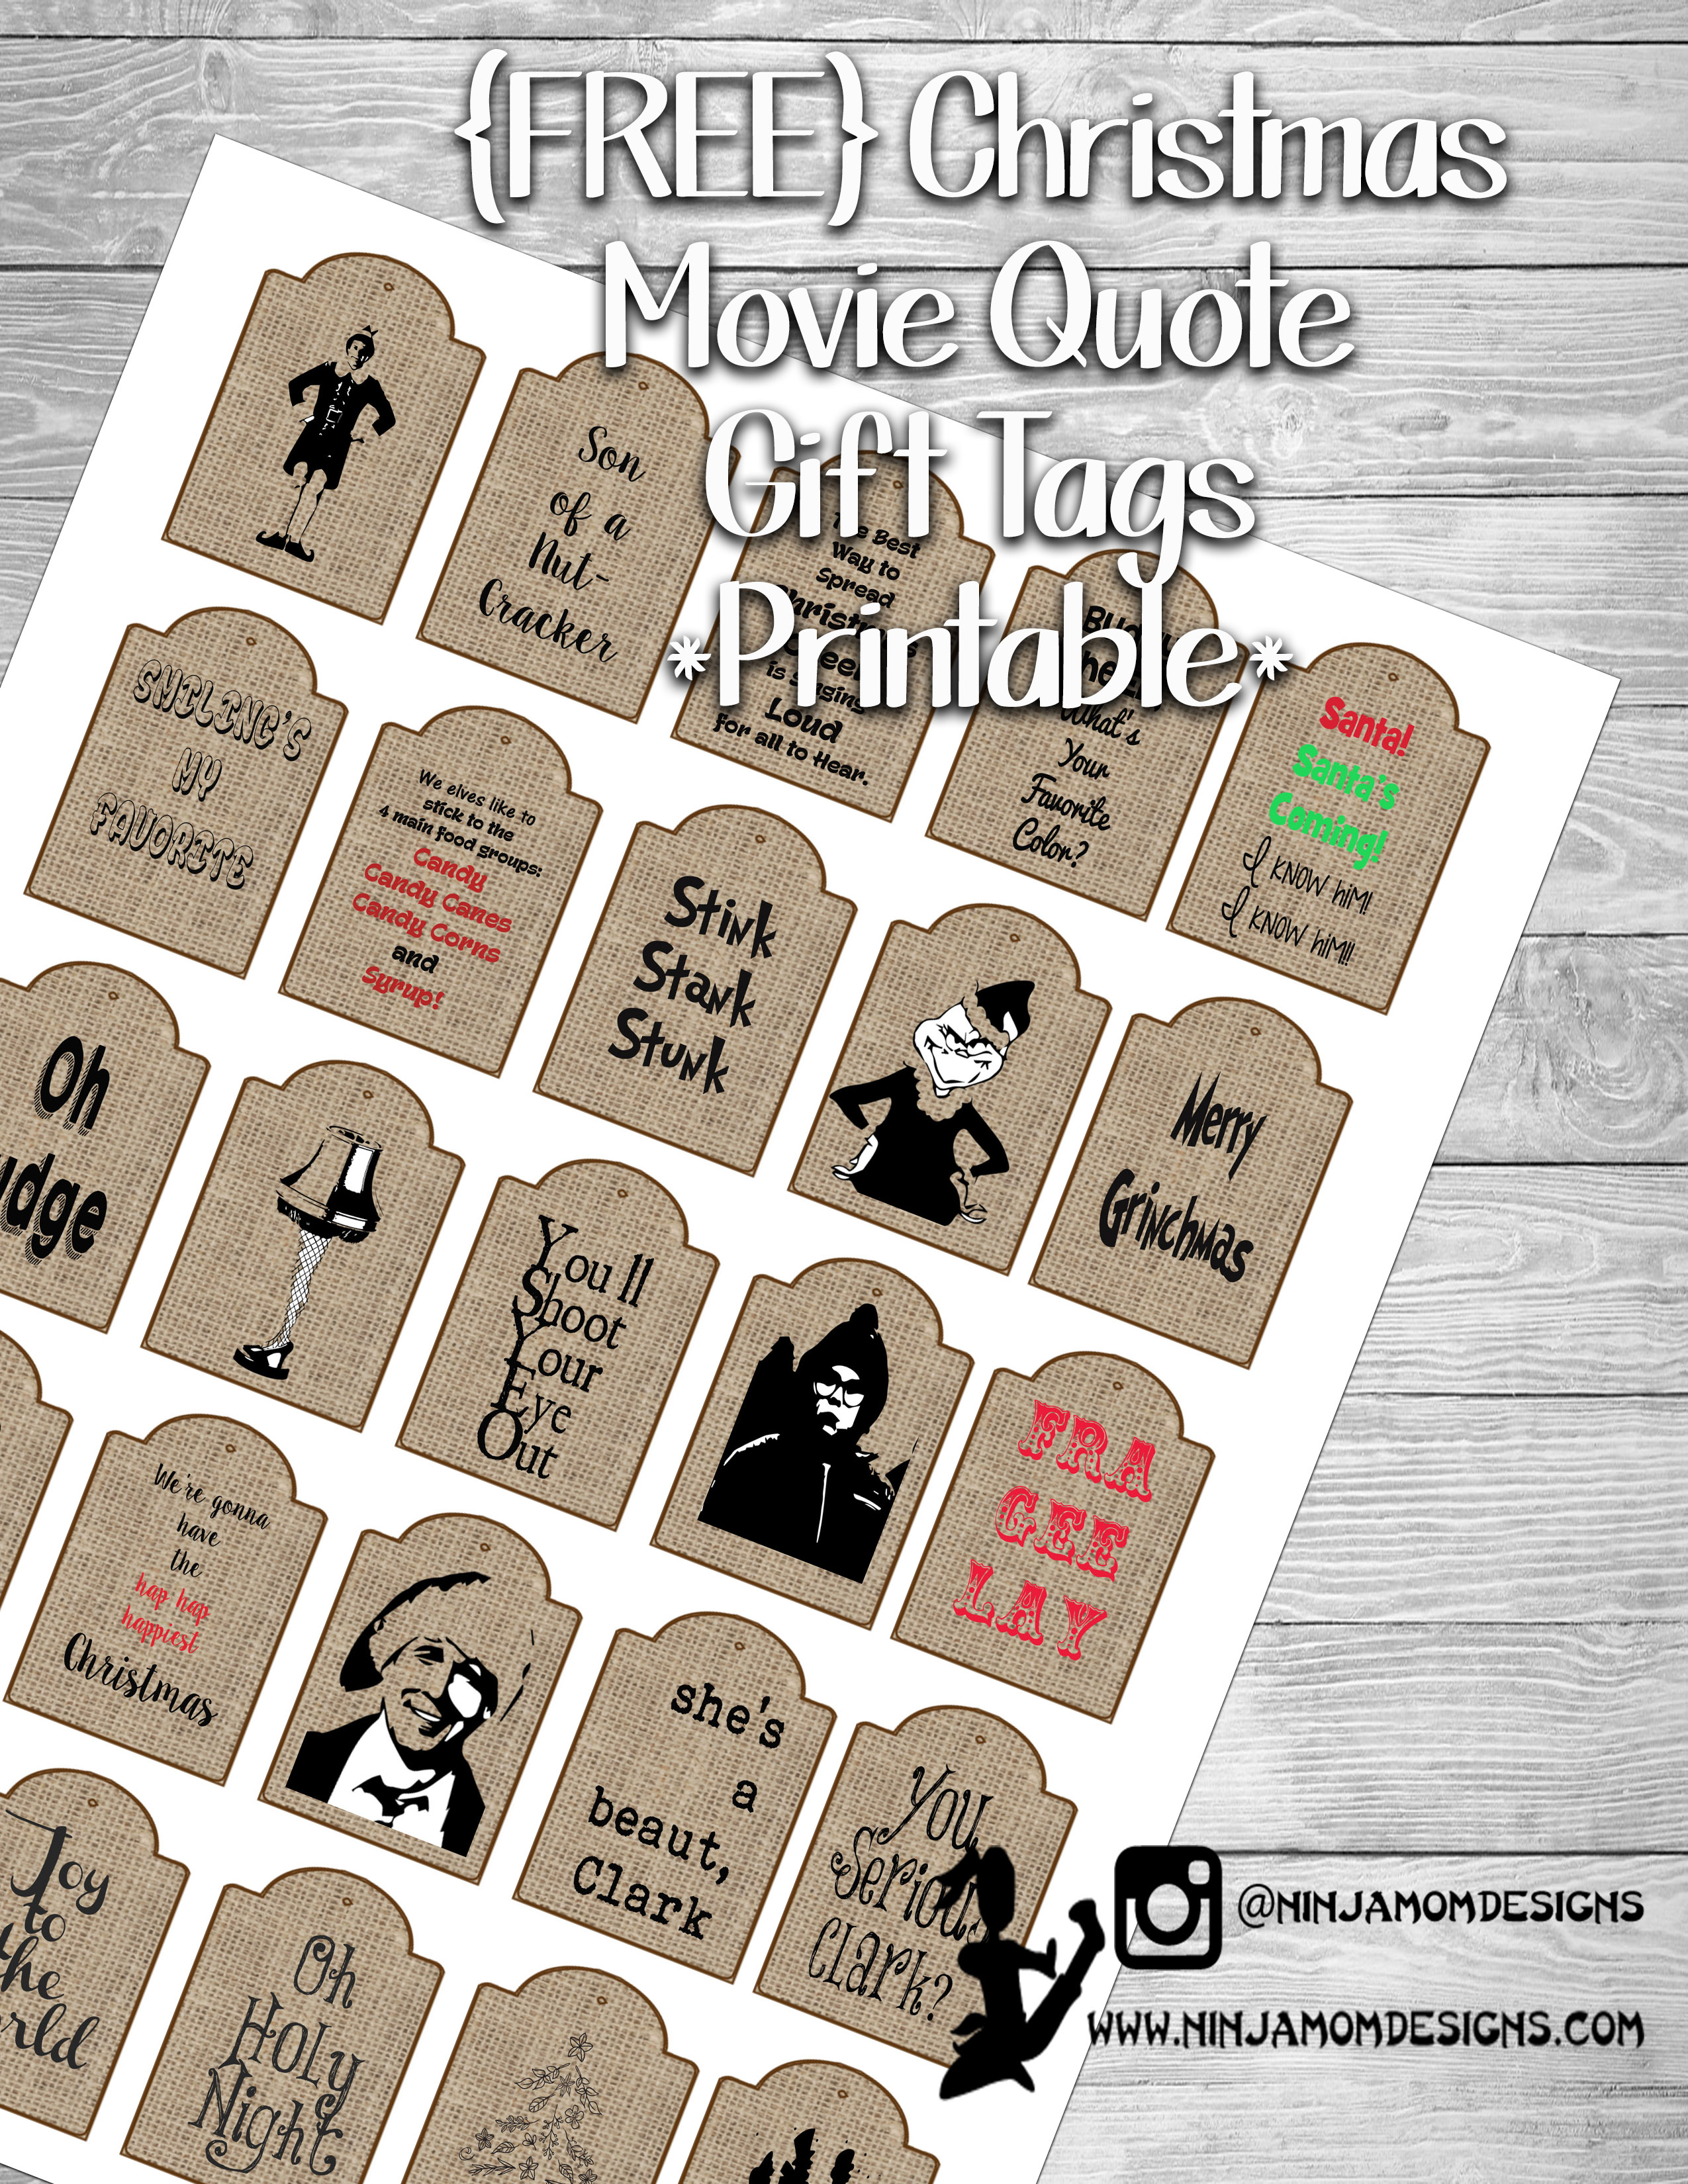 FREE} Christmas Movie Quote Gift Tags Printable